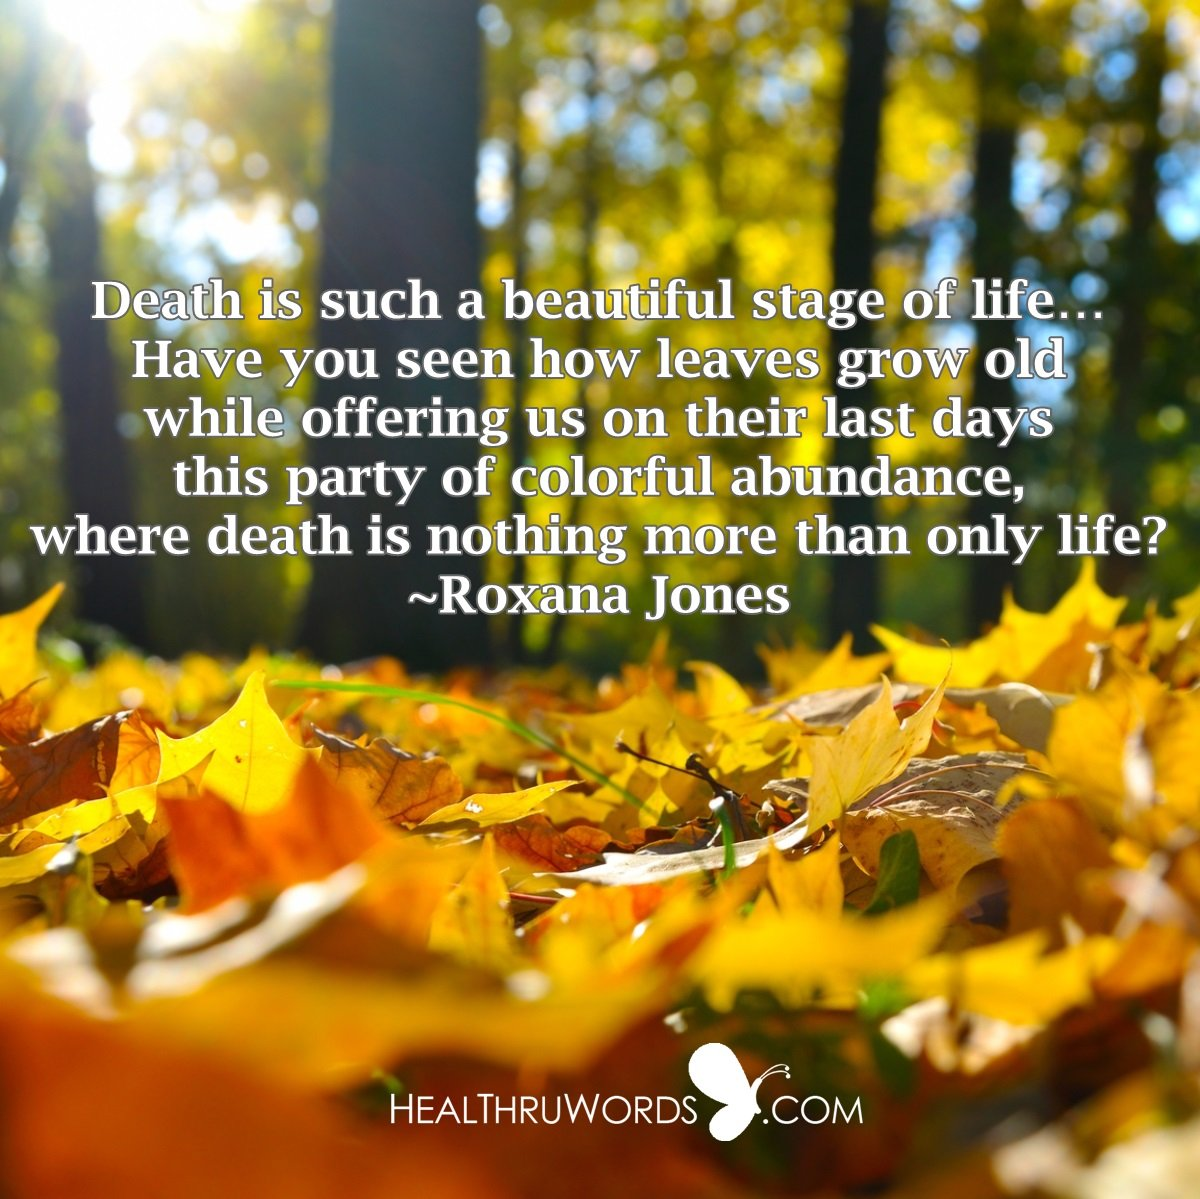 death is life inspirational images and quotes